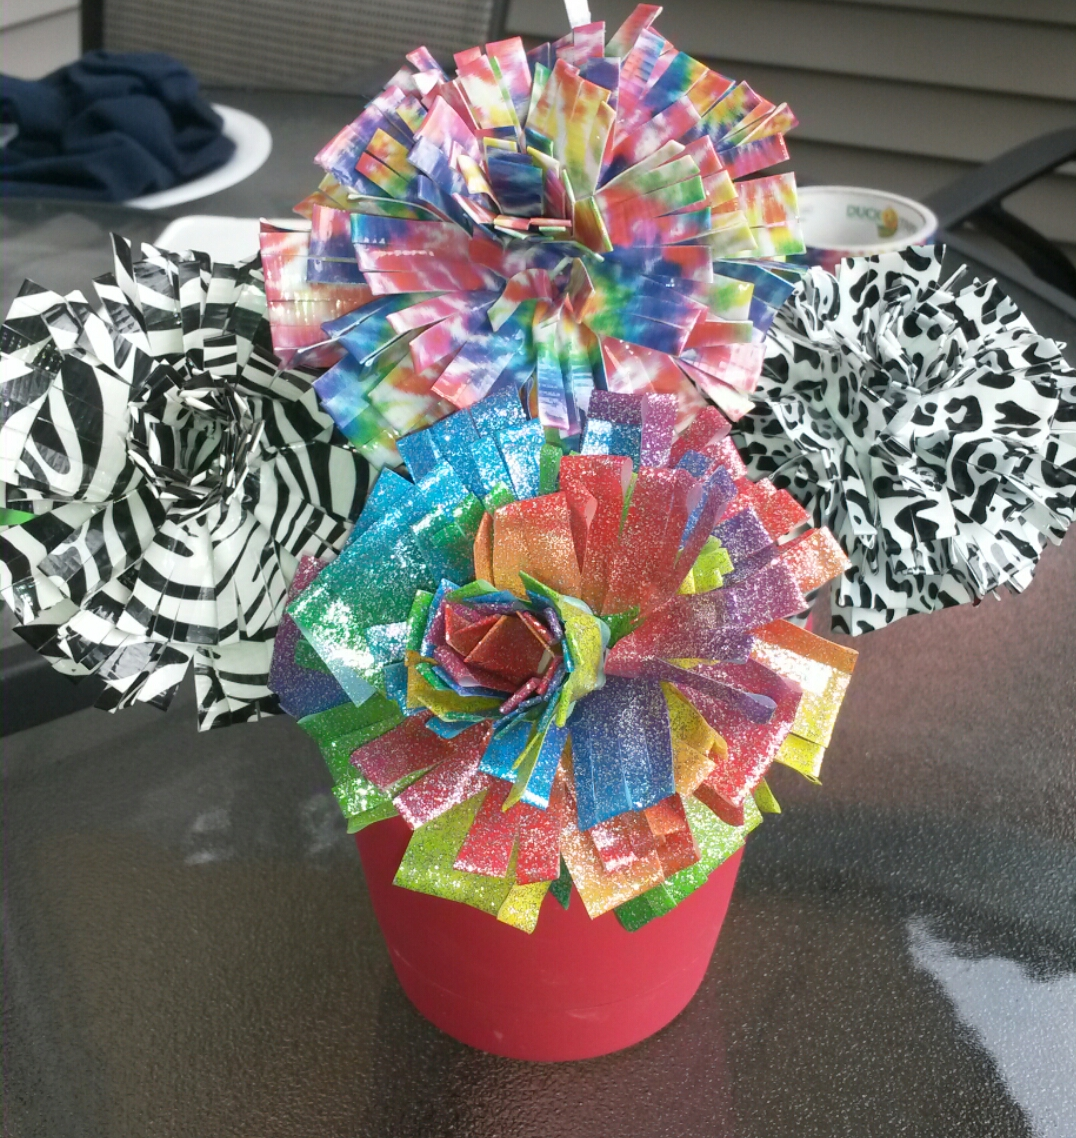 Back to school diy duct tape flower pens craft mommys block party years ago when my oldest daughter started pre school the very first day of school she wanted to take a flower to her teacher several years later it is mightylinksfo